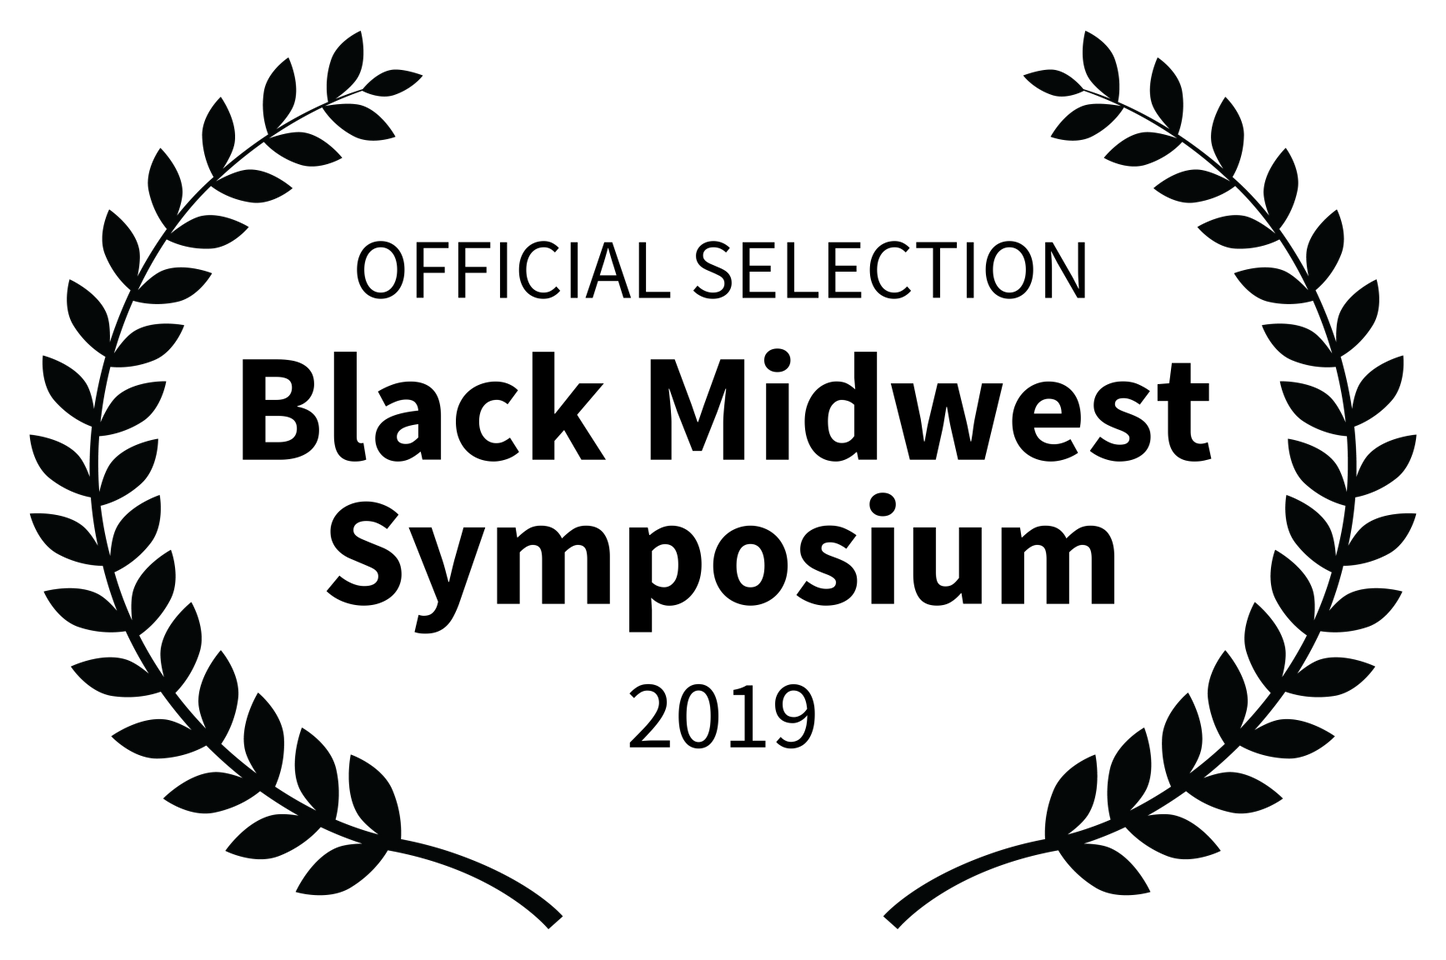 OFFICIAL SELECTION - Black Midwest Sympo